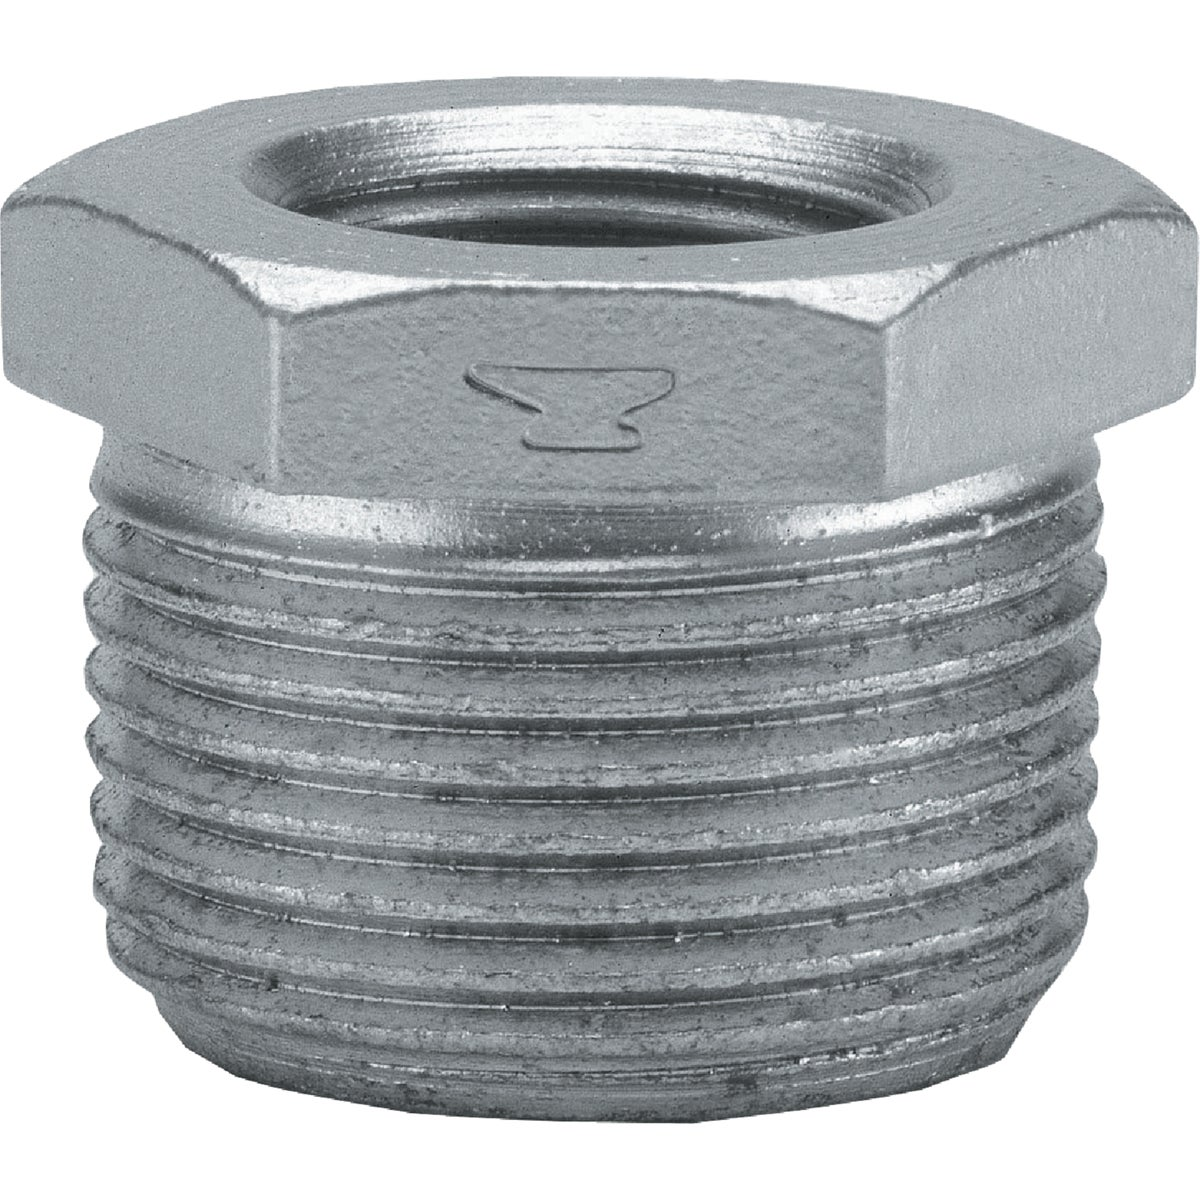 3/8X1/4 GALV BUSHING - 8700130407 by Anvil International